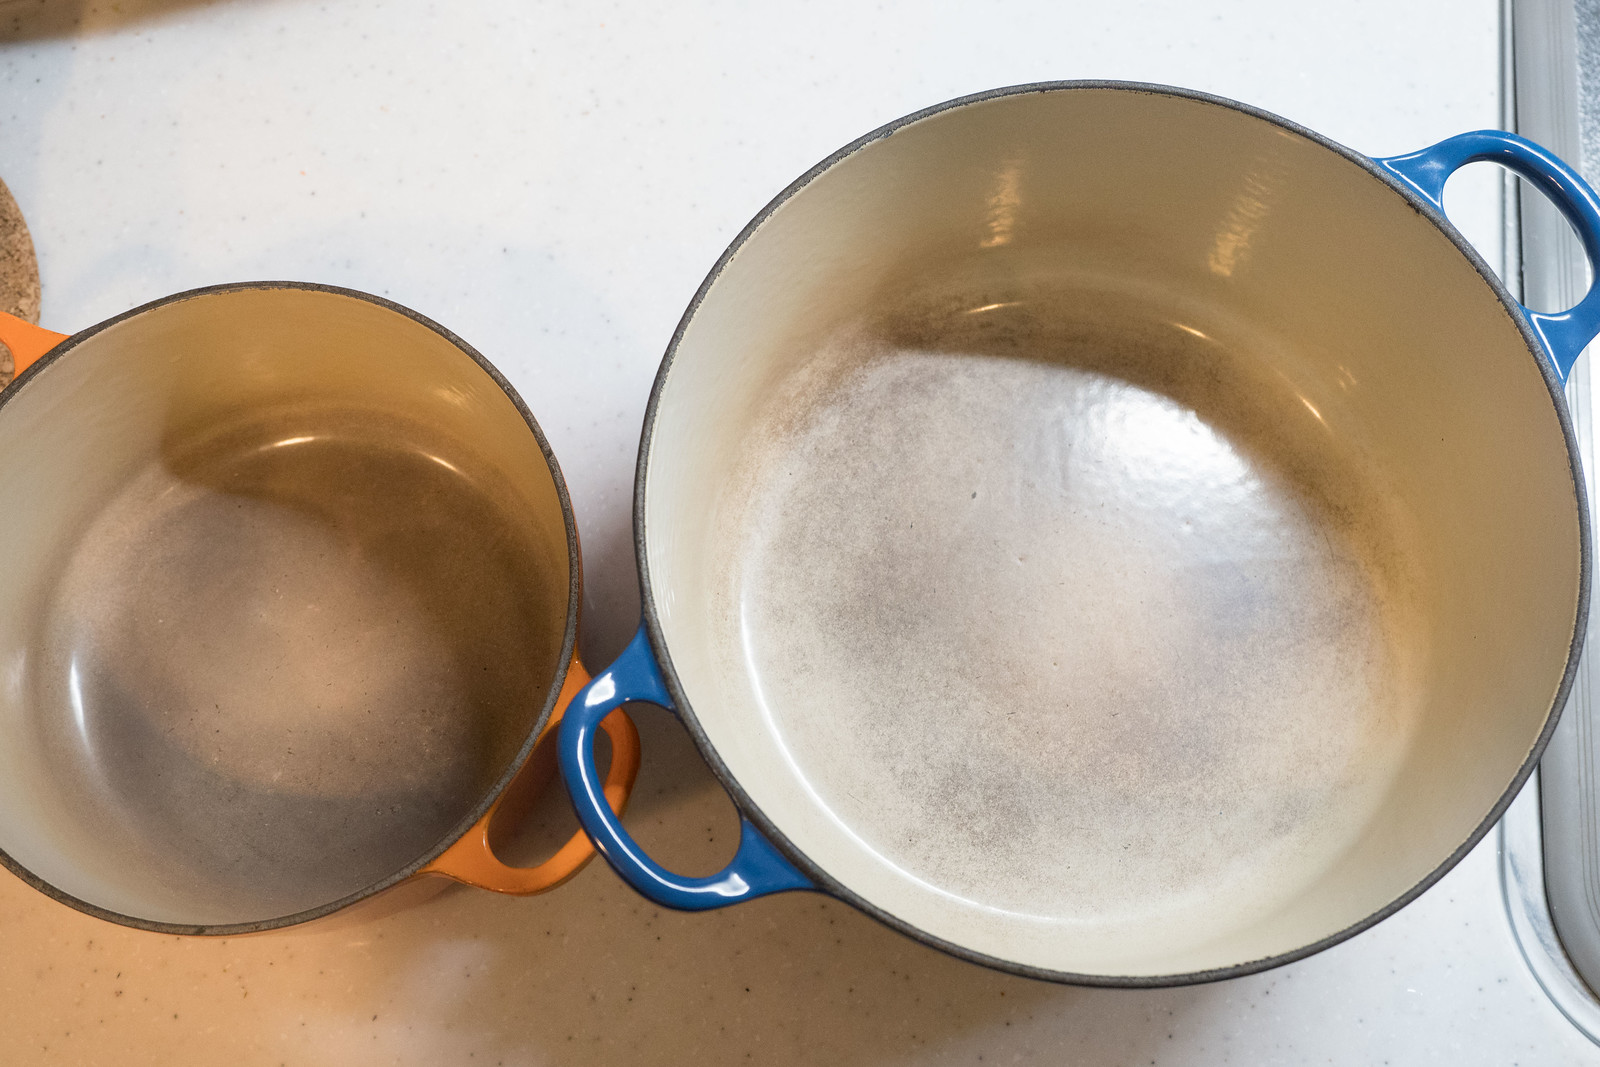 LE_CREUSET_CLEANER-20